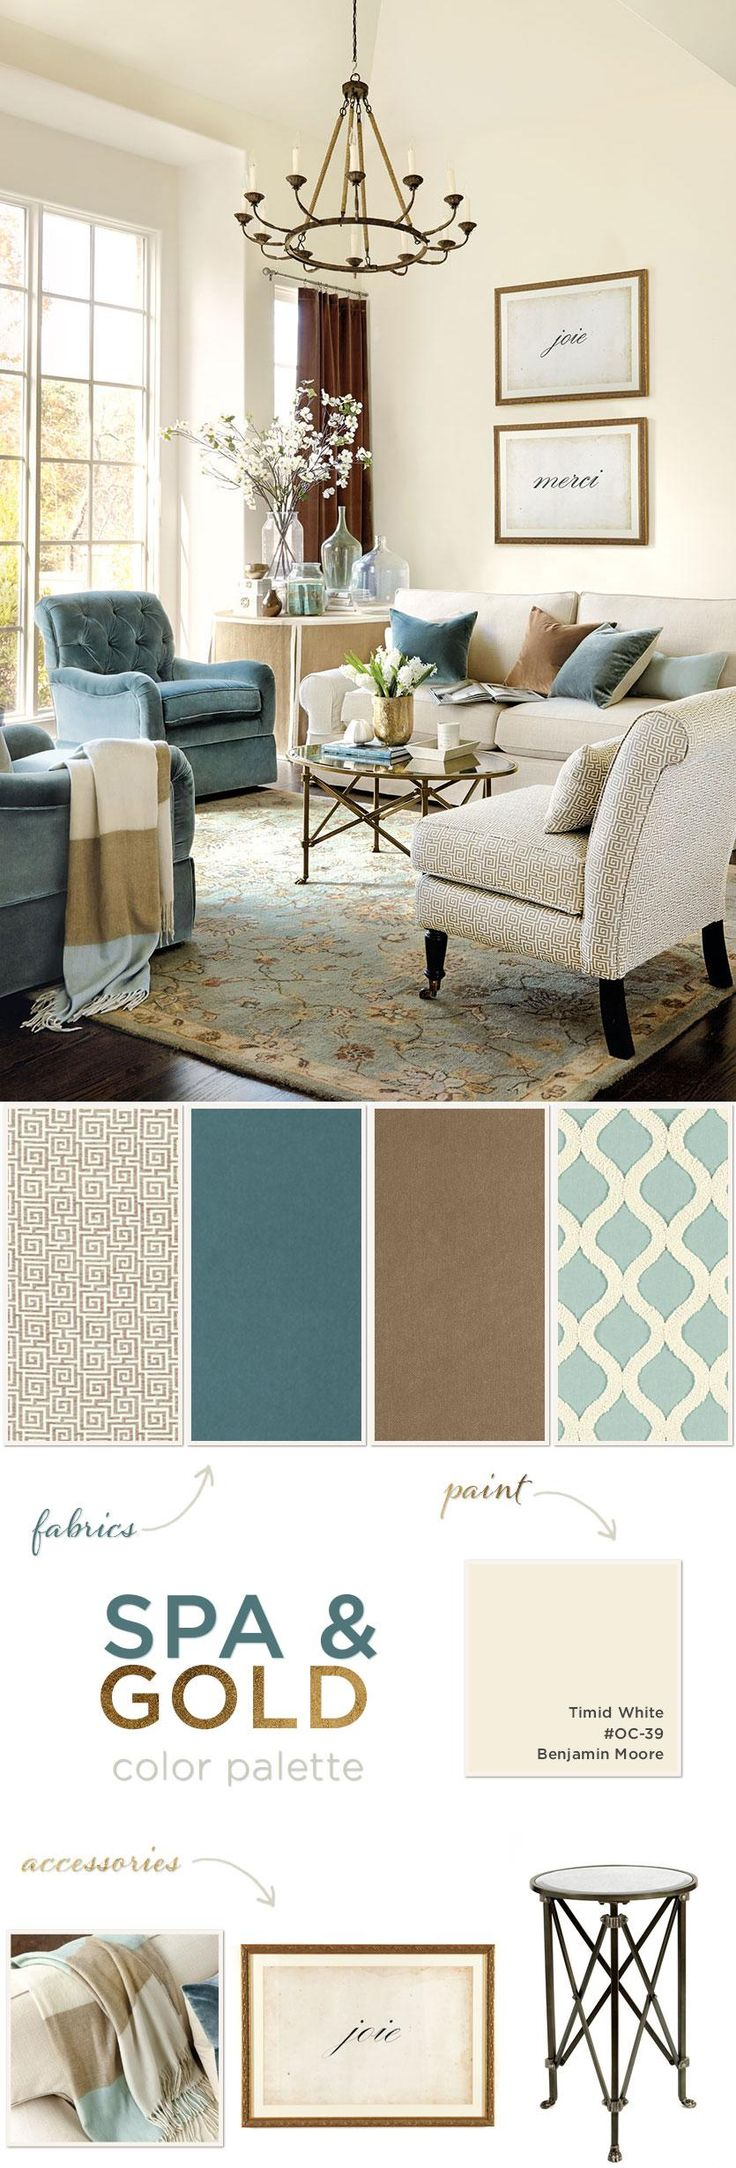 homey inspiration teal and brown bedroom ideas. Gold gives spa blue a cozy  warmth Color palette for formal living dining 143 best Bedrooms images on Pinterest Home ideas Bedroom